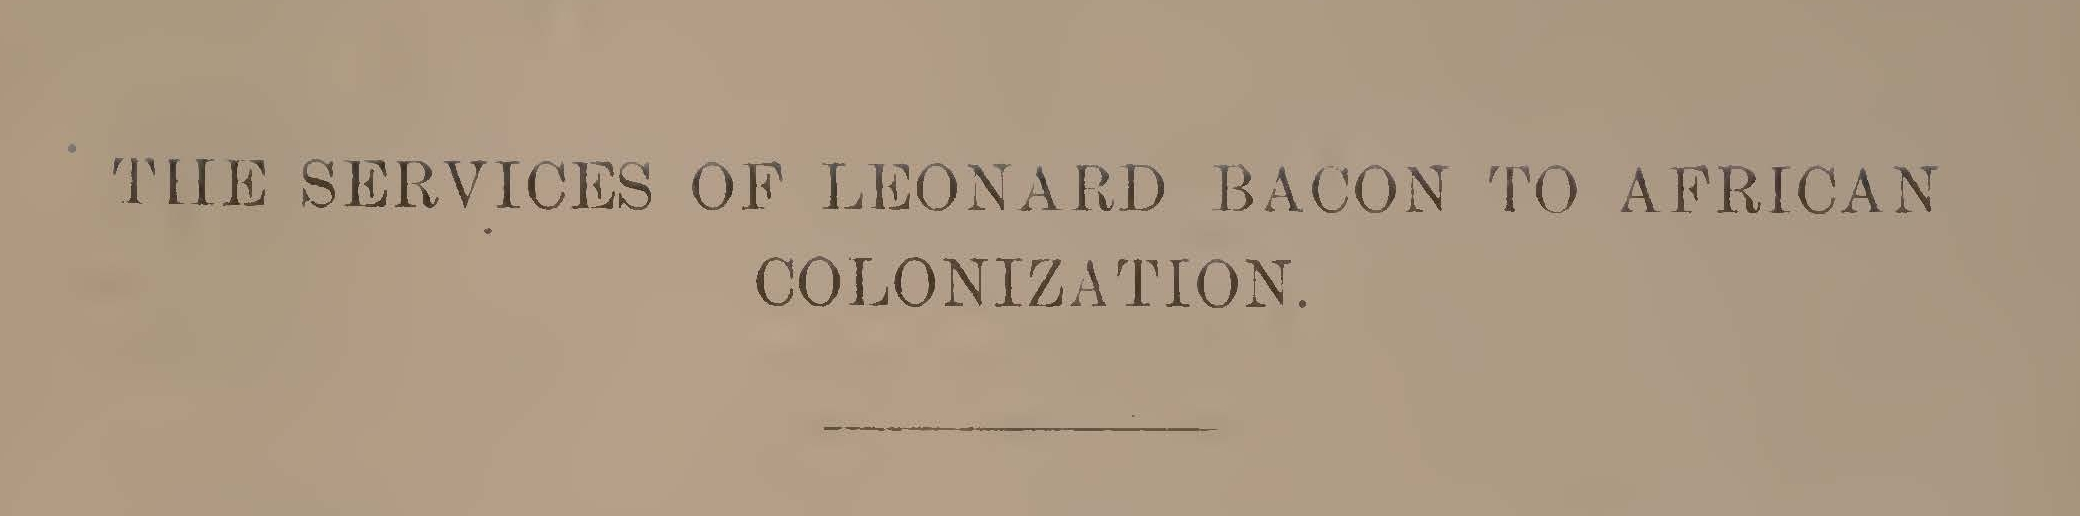 Bacon, Leonard Woolsey, The Services of Leonard Bacon to African Colonization Title Page.jpg